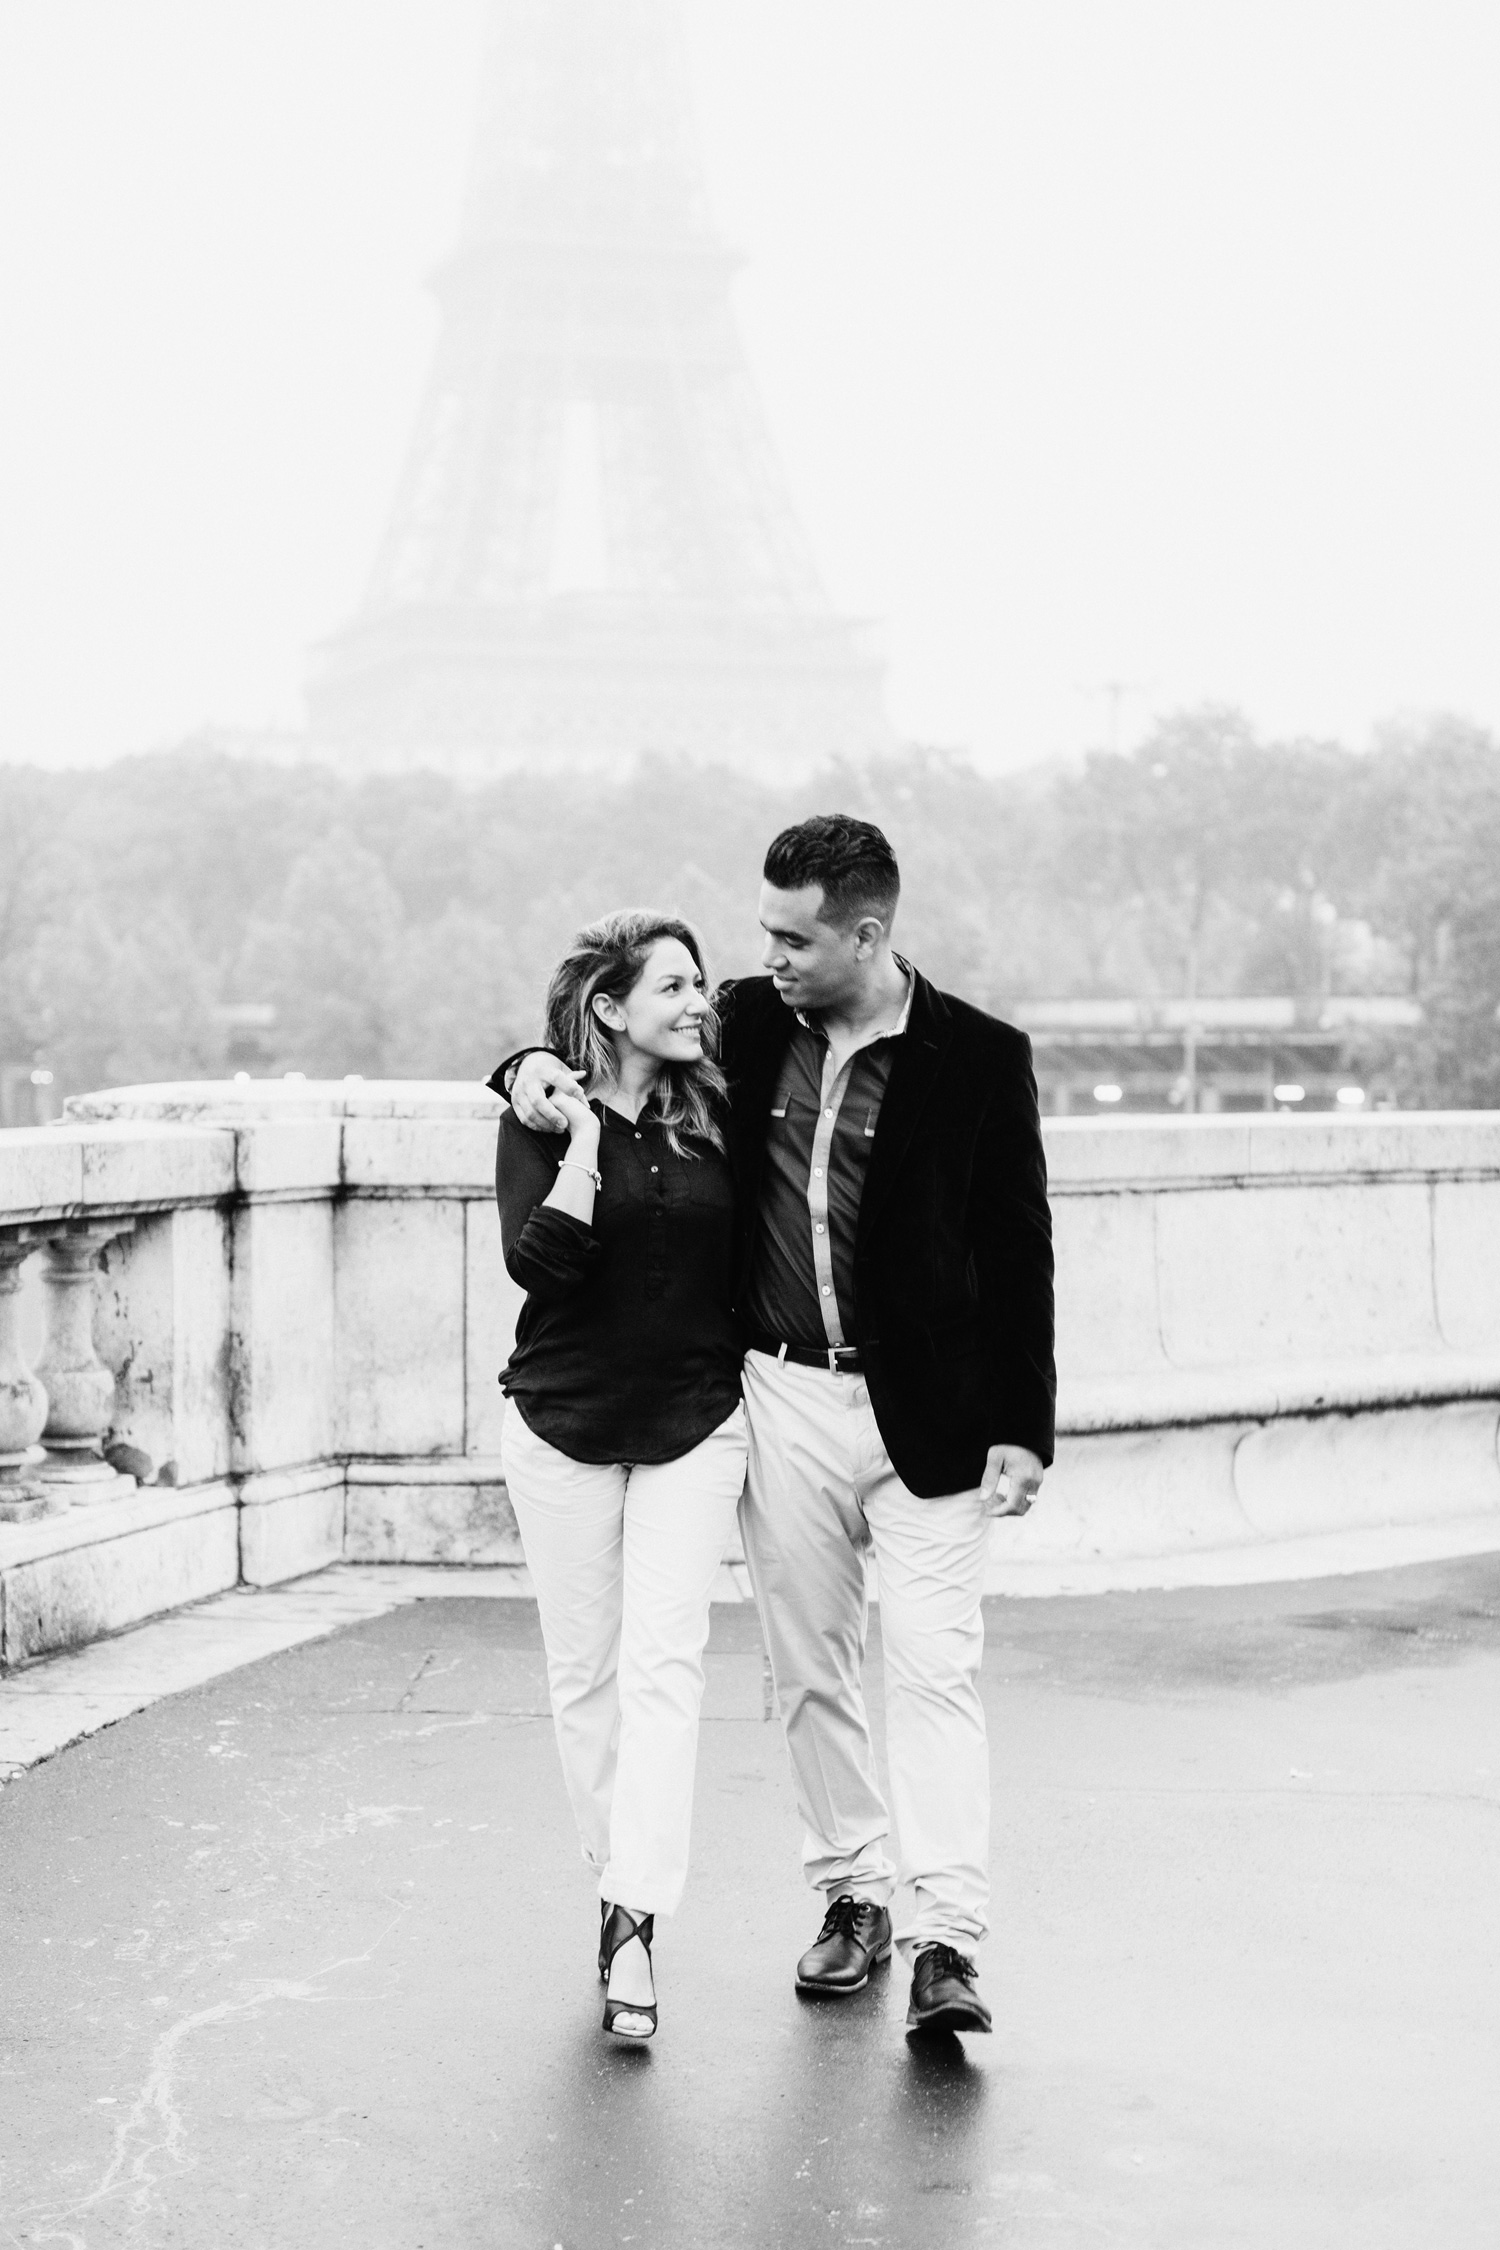 076-katie-mitchell-paris-engagement-photographer.jpg